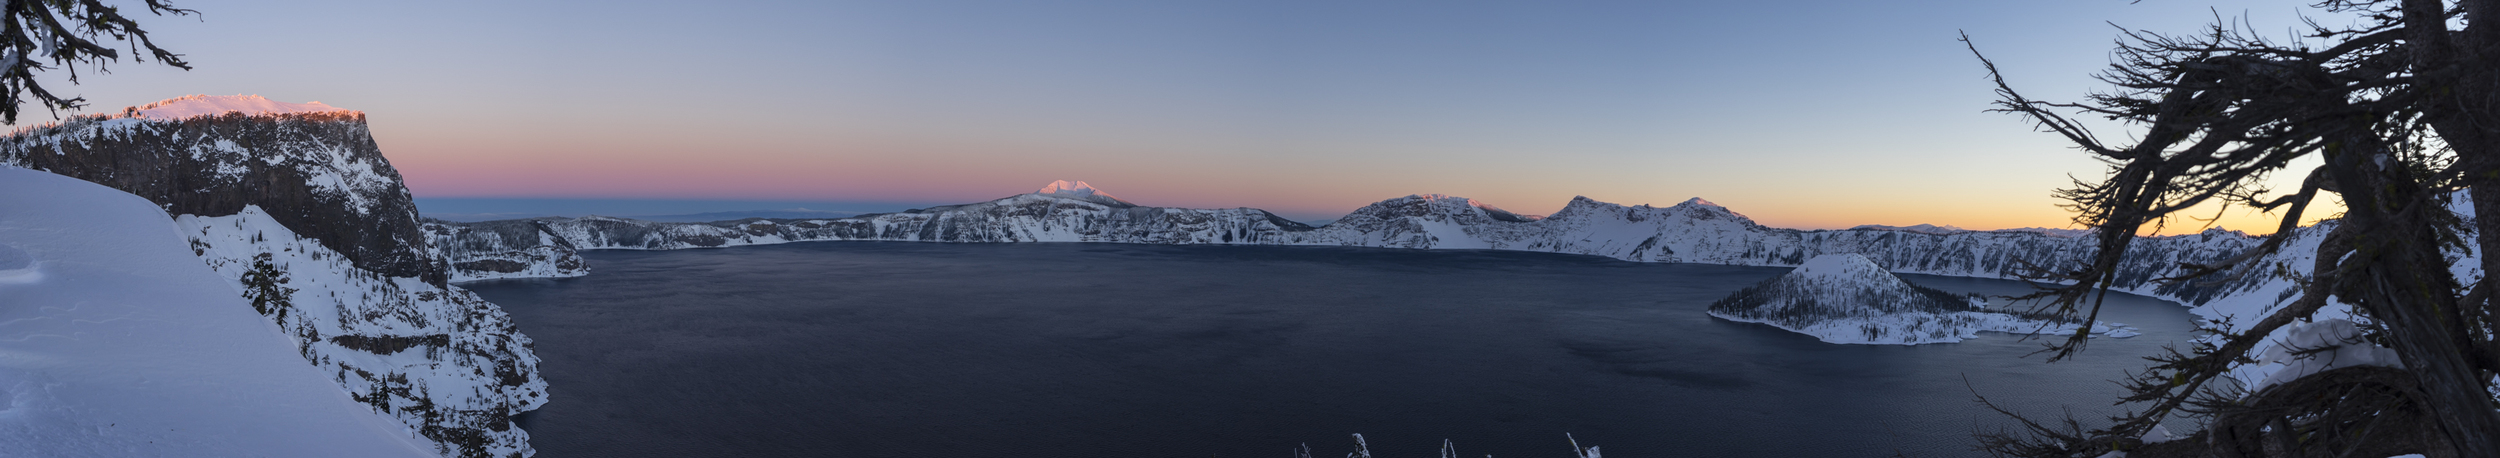 Sunset at Crater Lake, Oregon, 2016